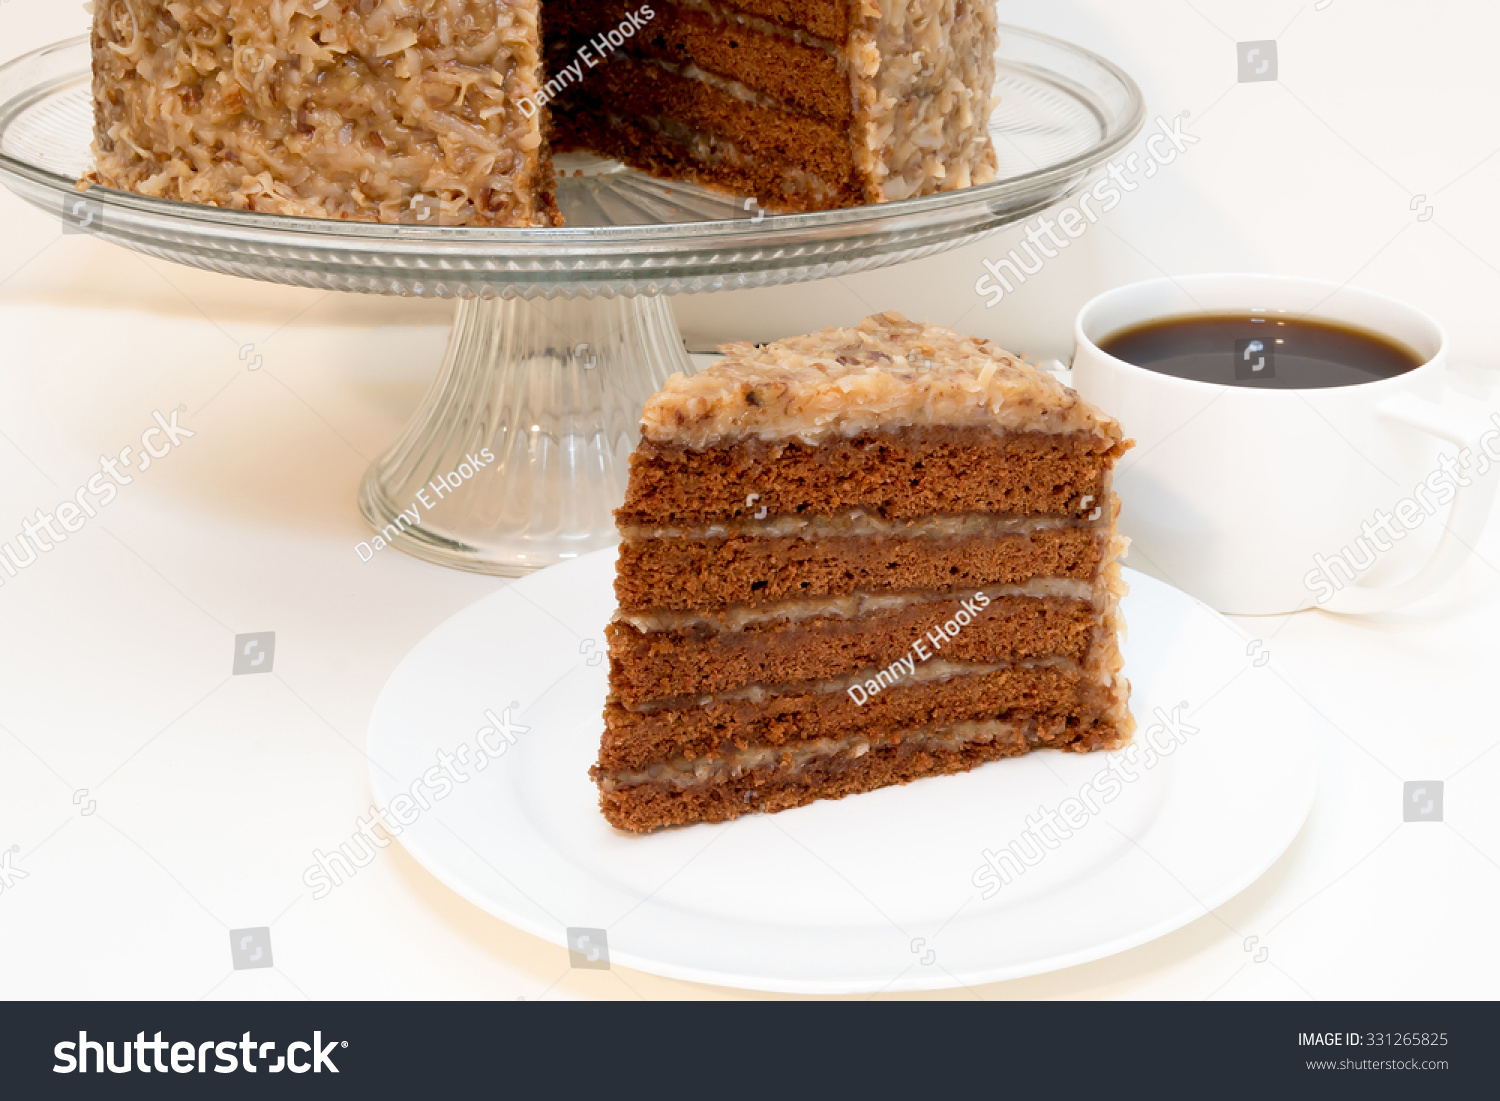 Slice German Chocolate Cake Removed Whole Stock Photo Edit Now 331265825